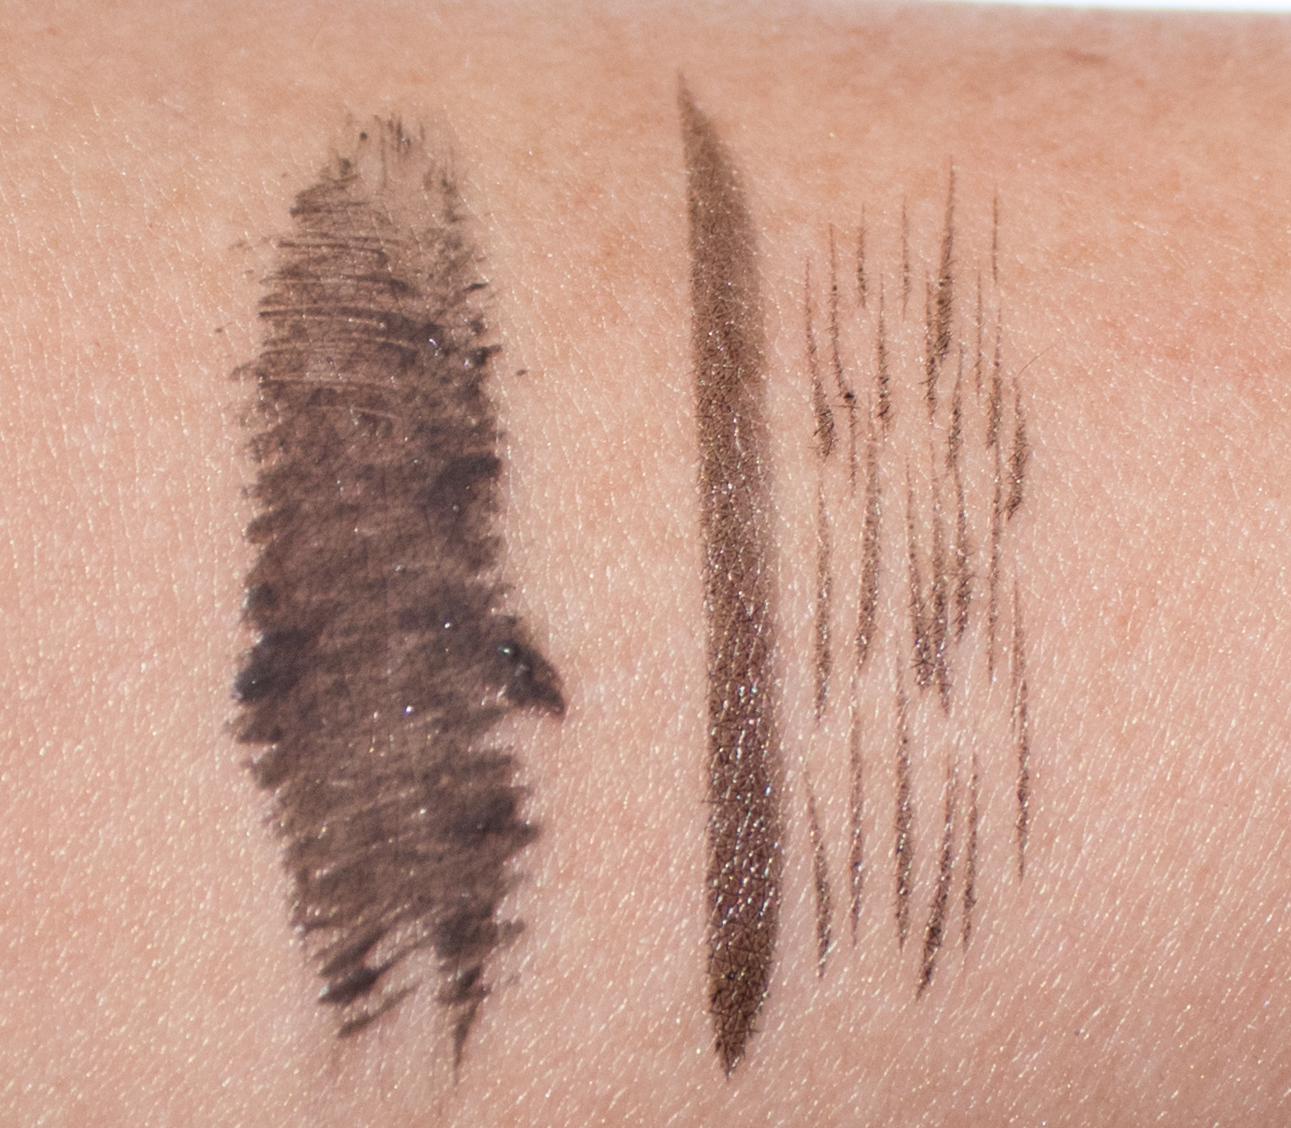 Glossier Brow Flick in Black vs. Boy Brow in Black